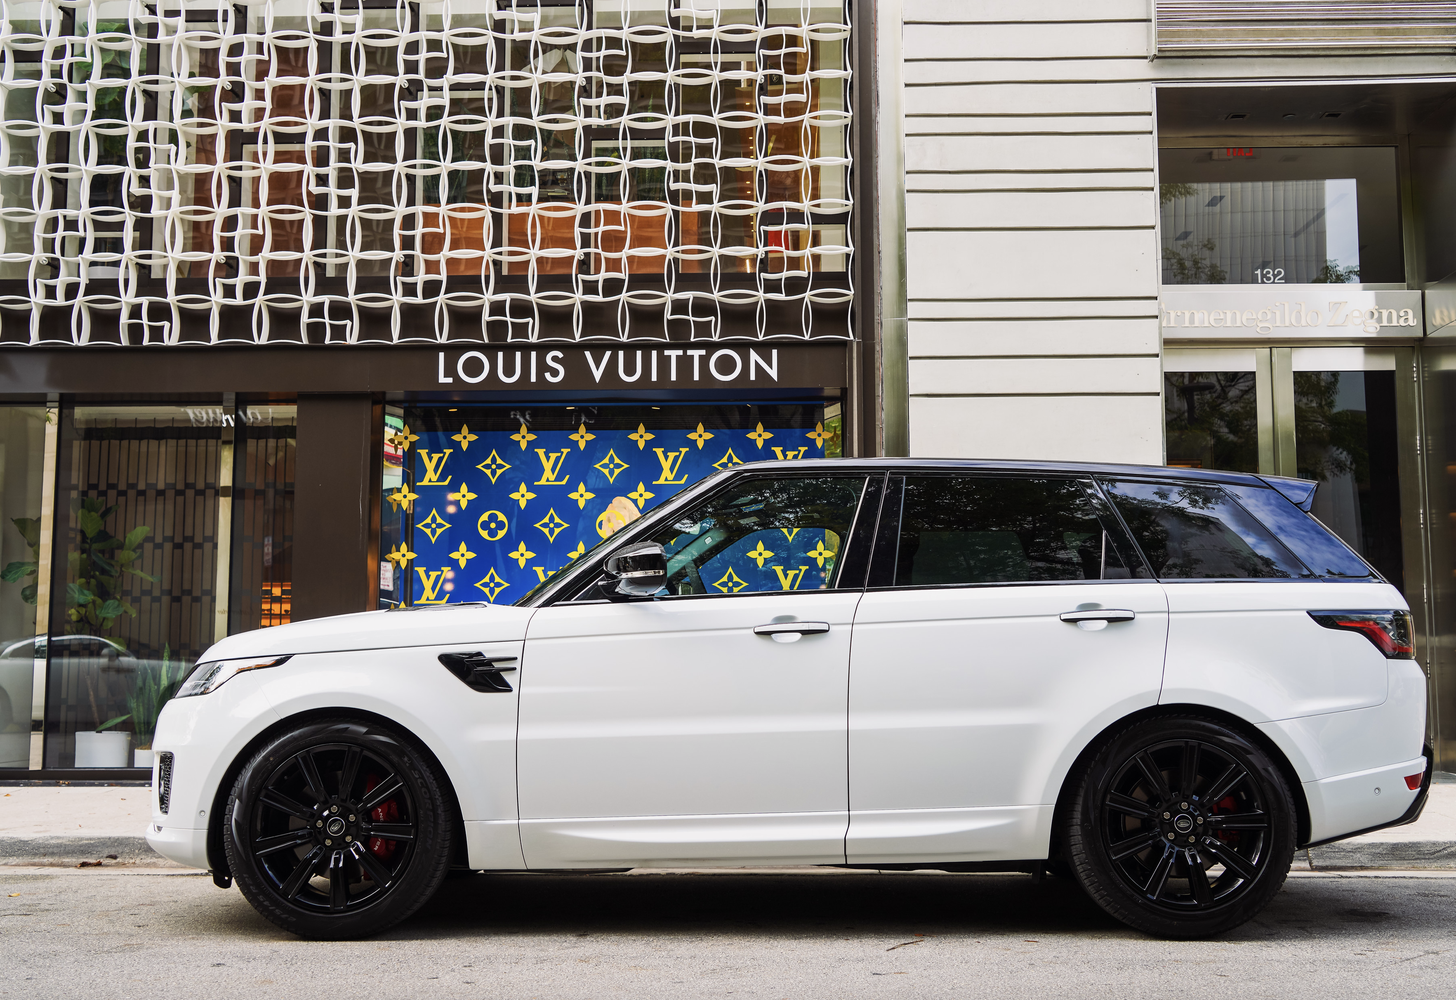 Image #5 of our  Range Rover Sport 22 White    In Miami Fort Lauderdale Palm Beach South Florida